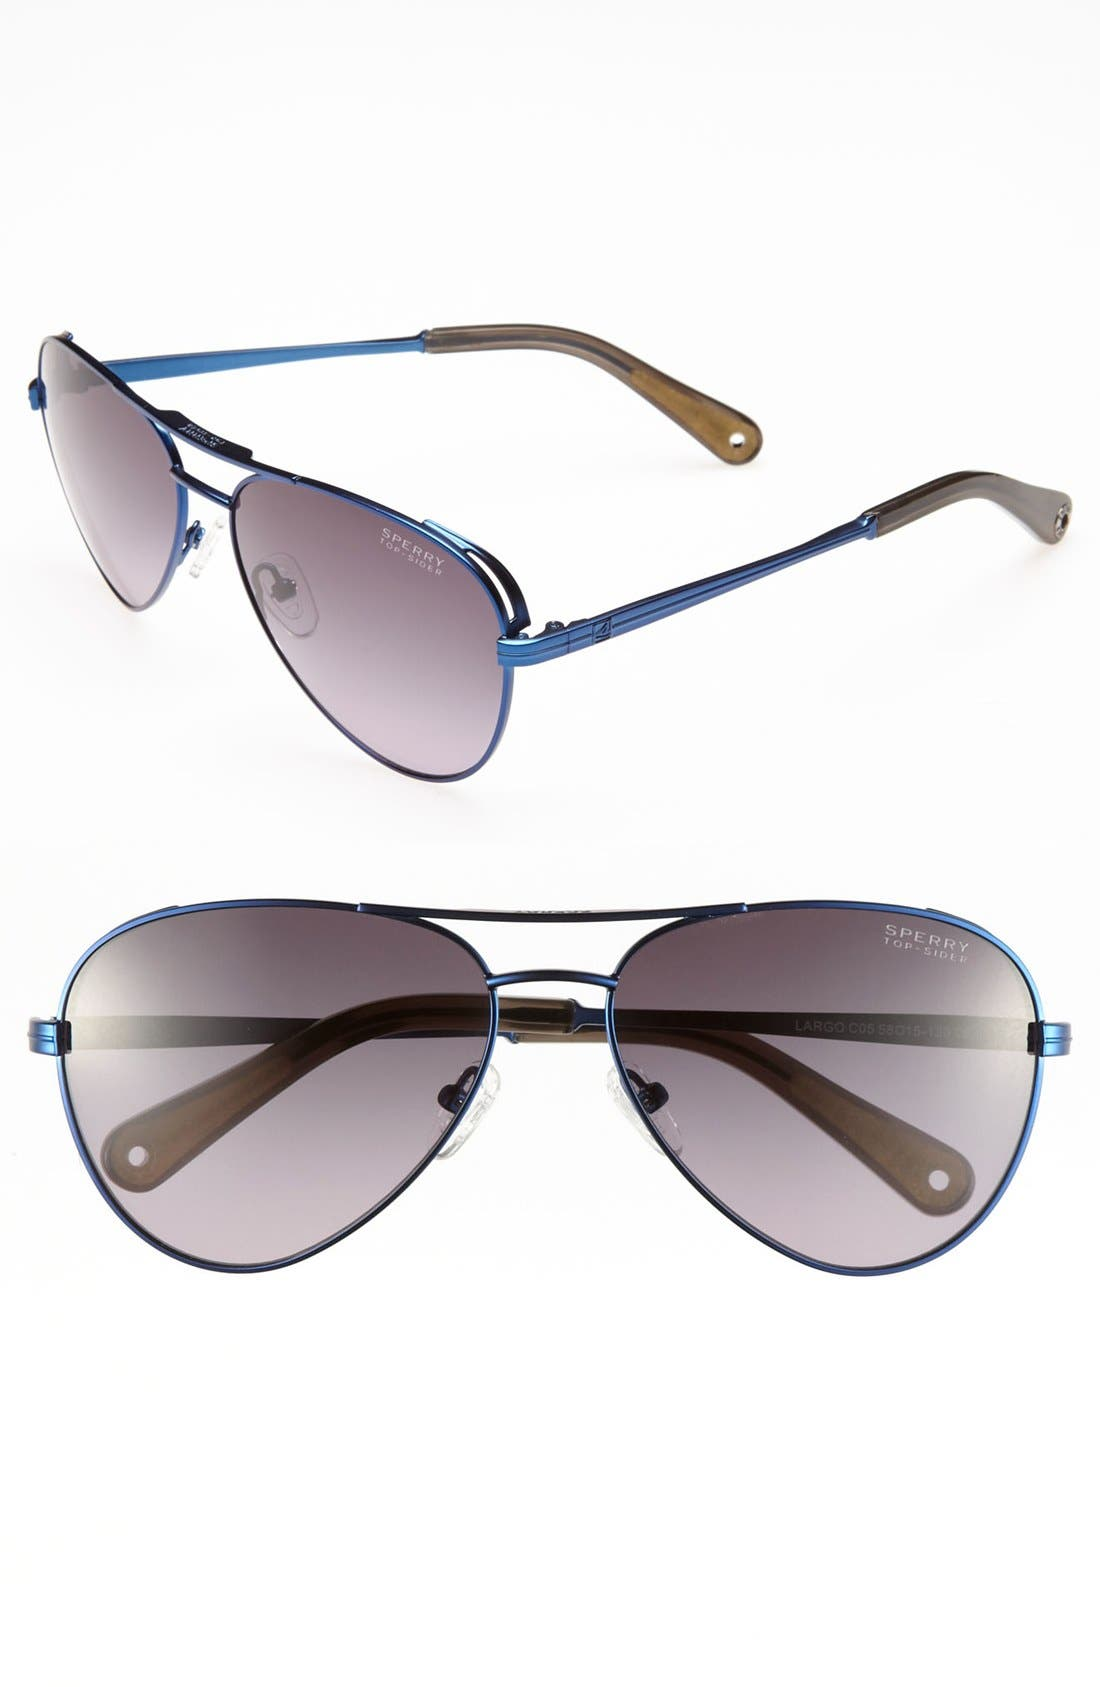 Main Image - Sperry Top-Sider® 'Largo' 58mm Aviator Sunglasses (Online Only)